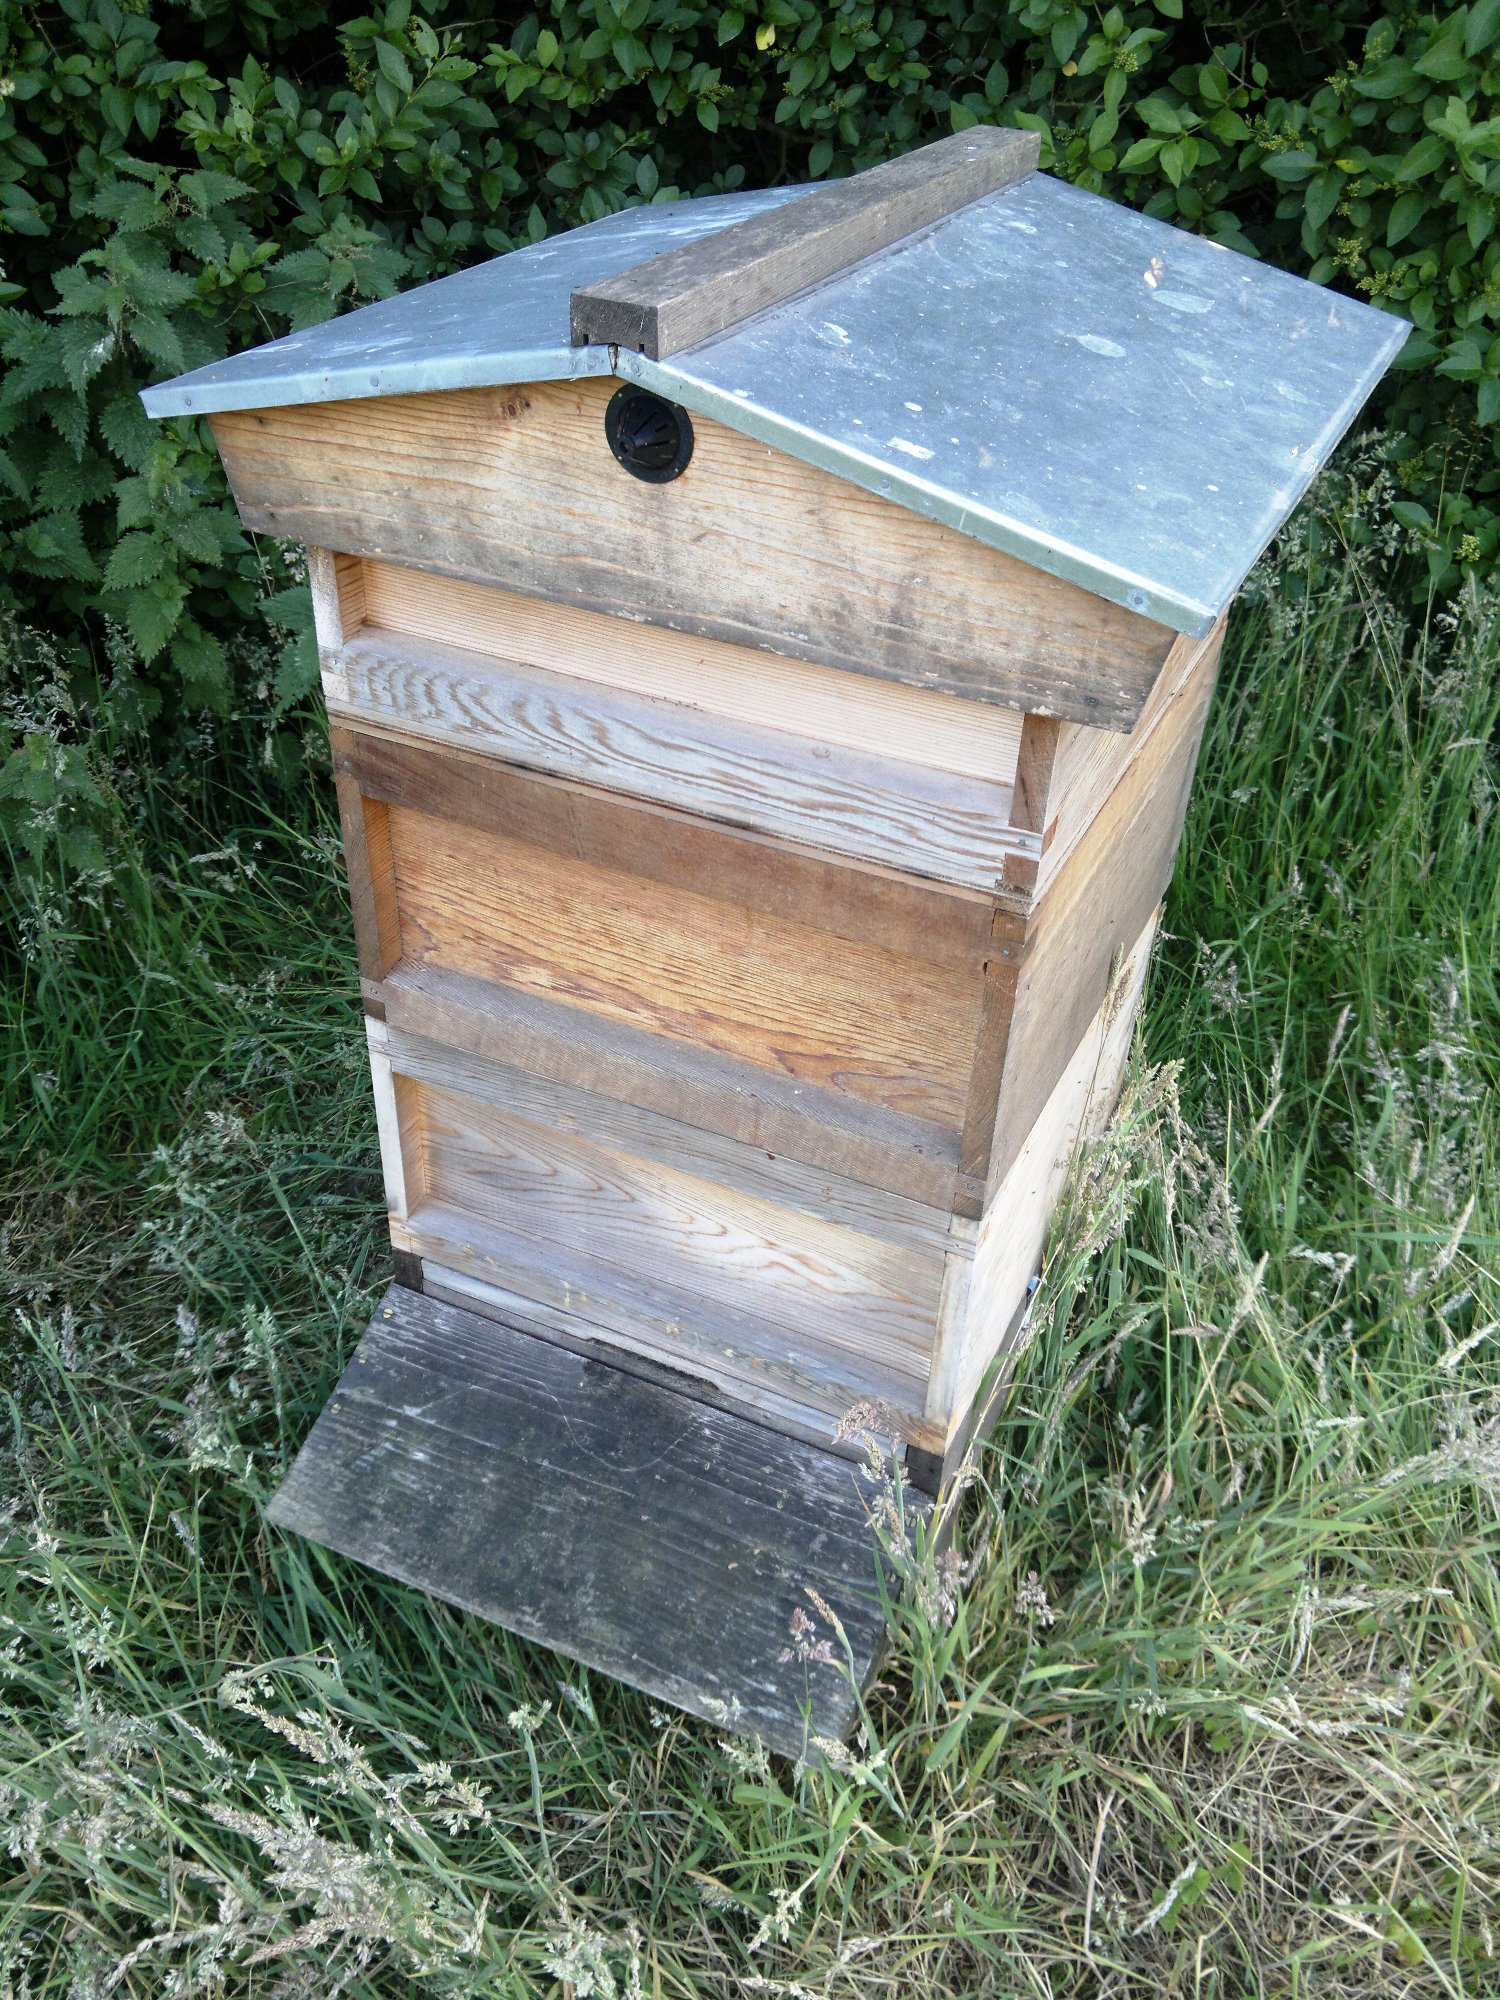 Hive occupied once again with a new colony of bees